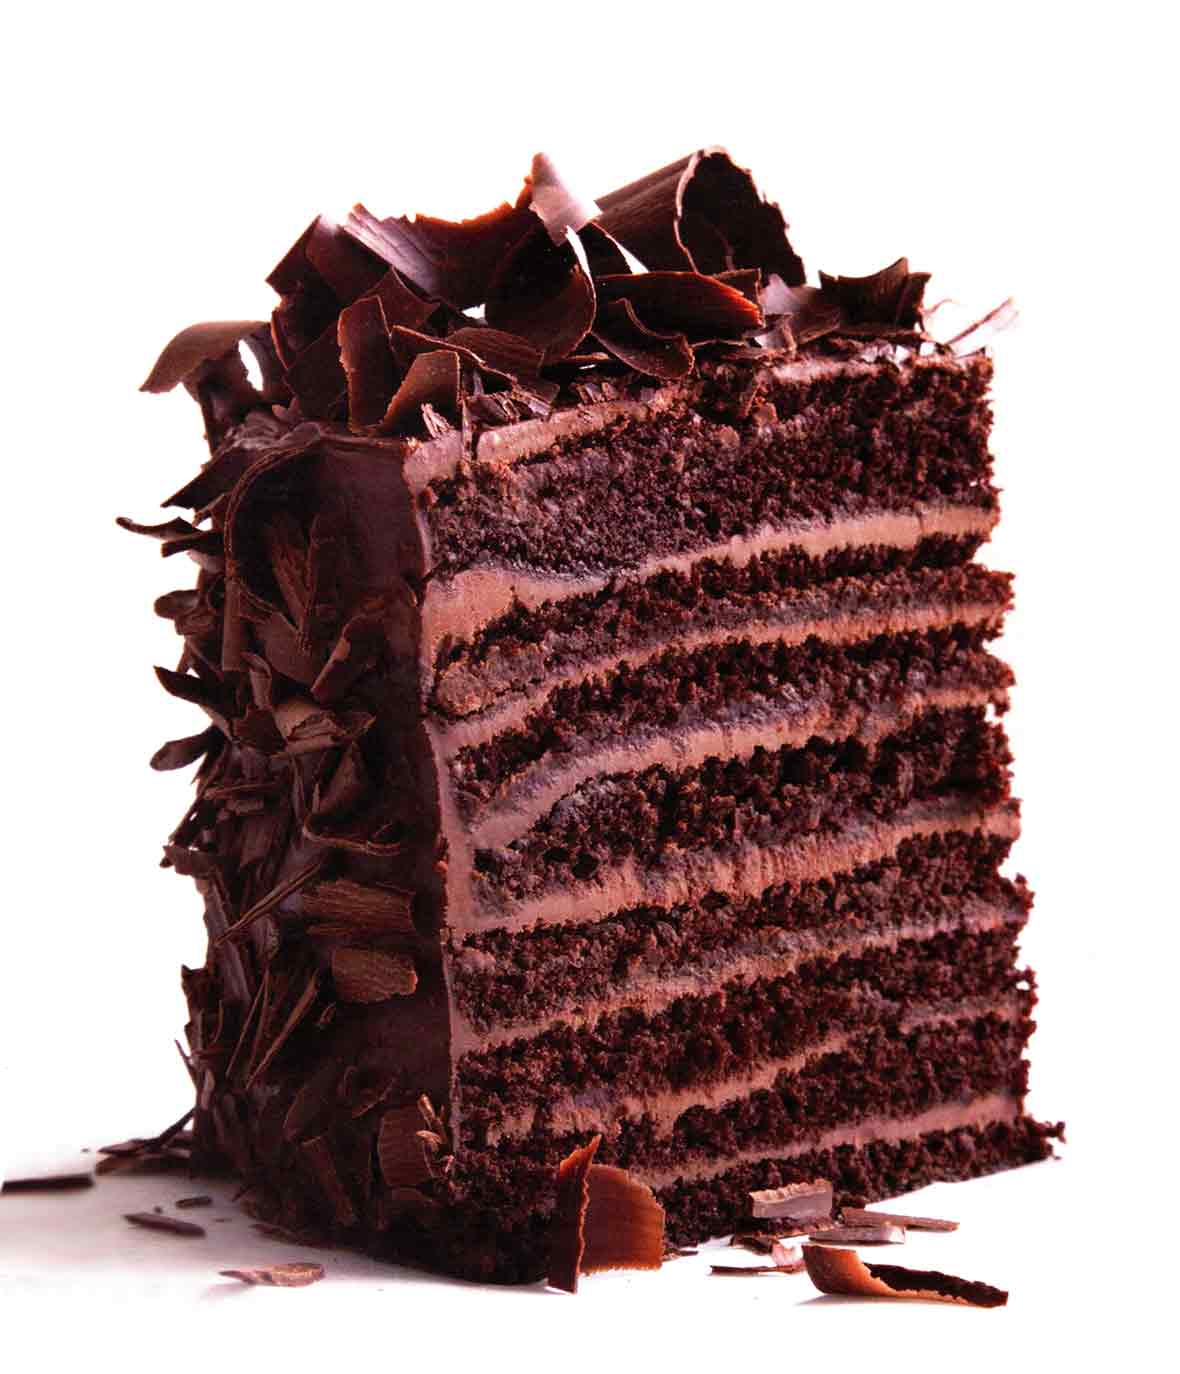 A 16-layer red-eye devil's food cake--alternating layer of chocolate cake and chocolate frosting